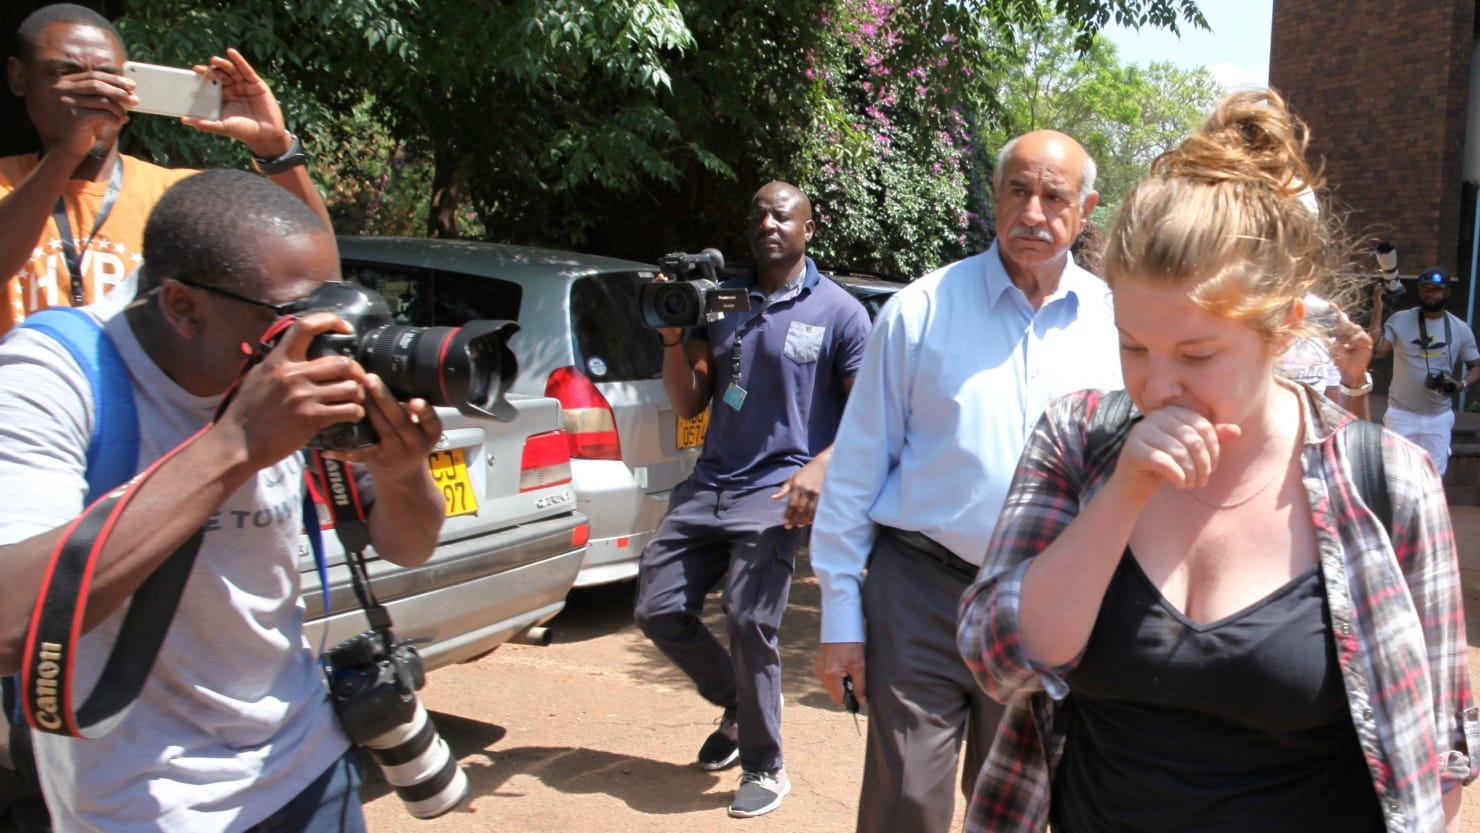 American woman arrested for insulting Mugabe